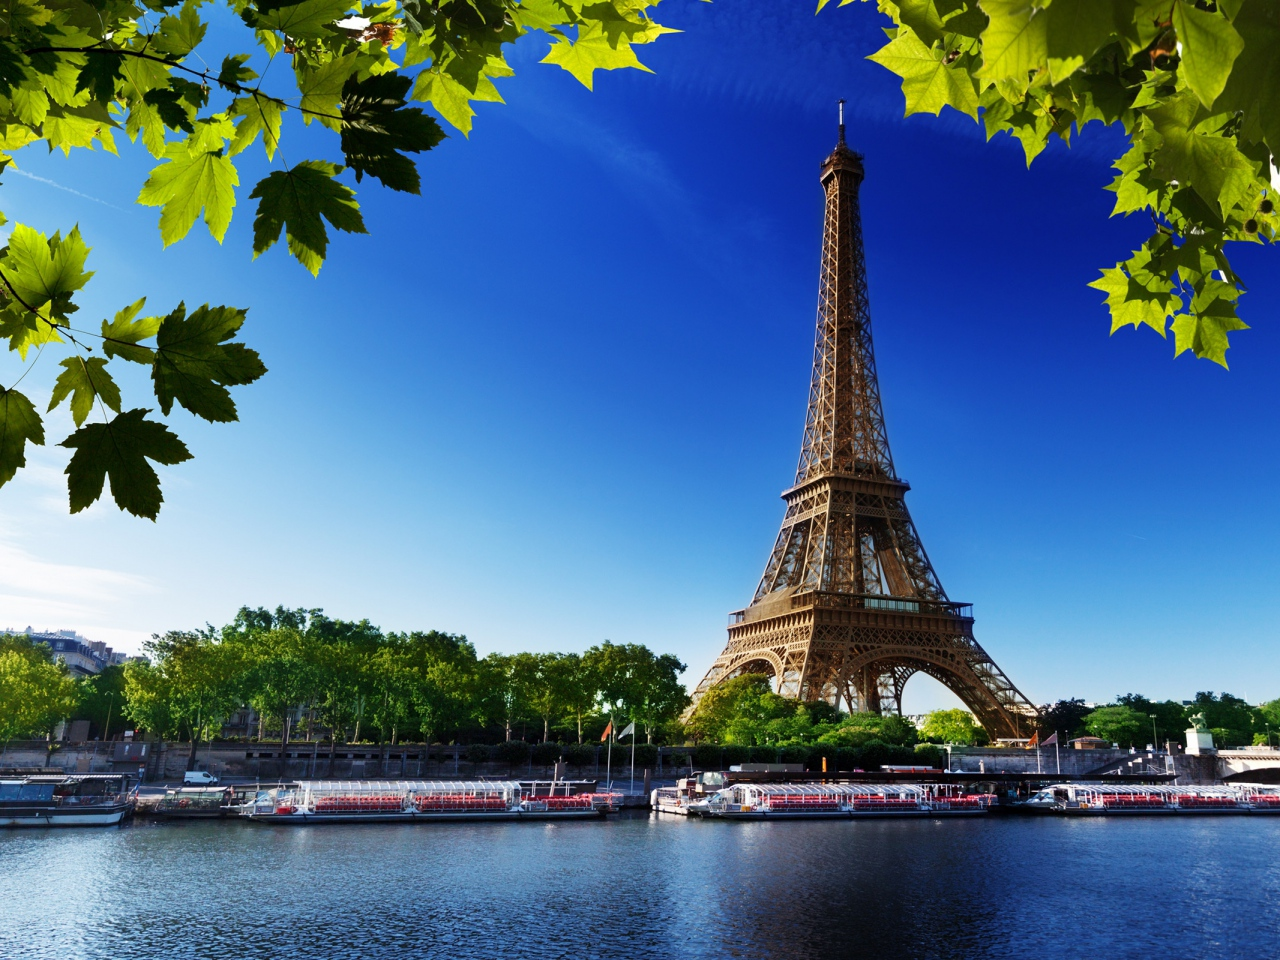 paris-eiffel-tower-france-river-beach-trees.jpg